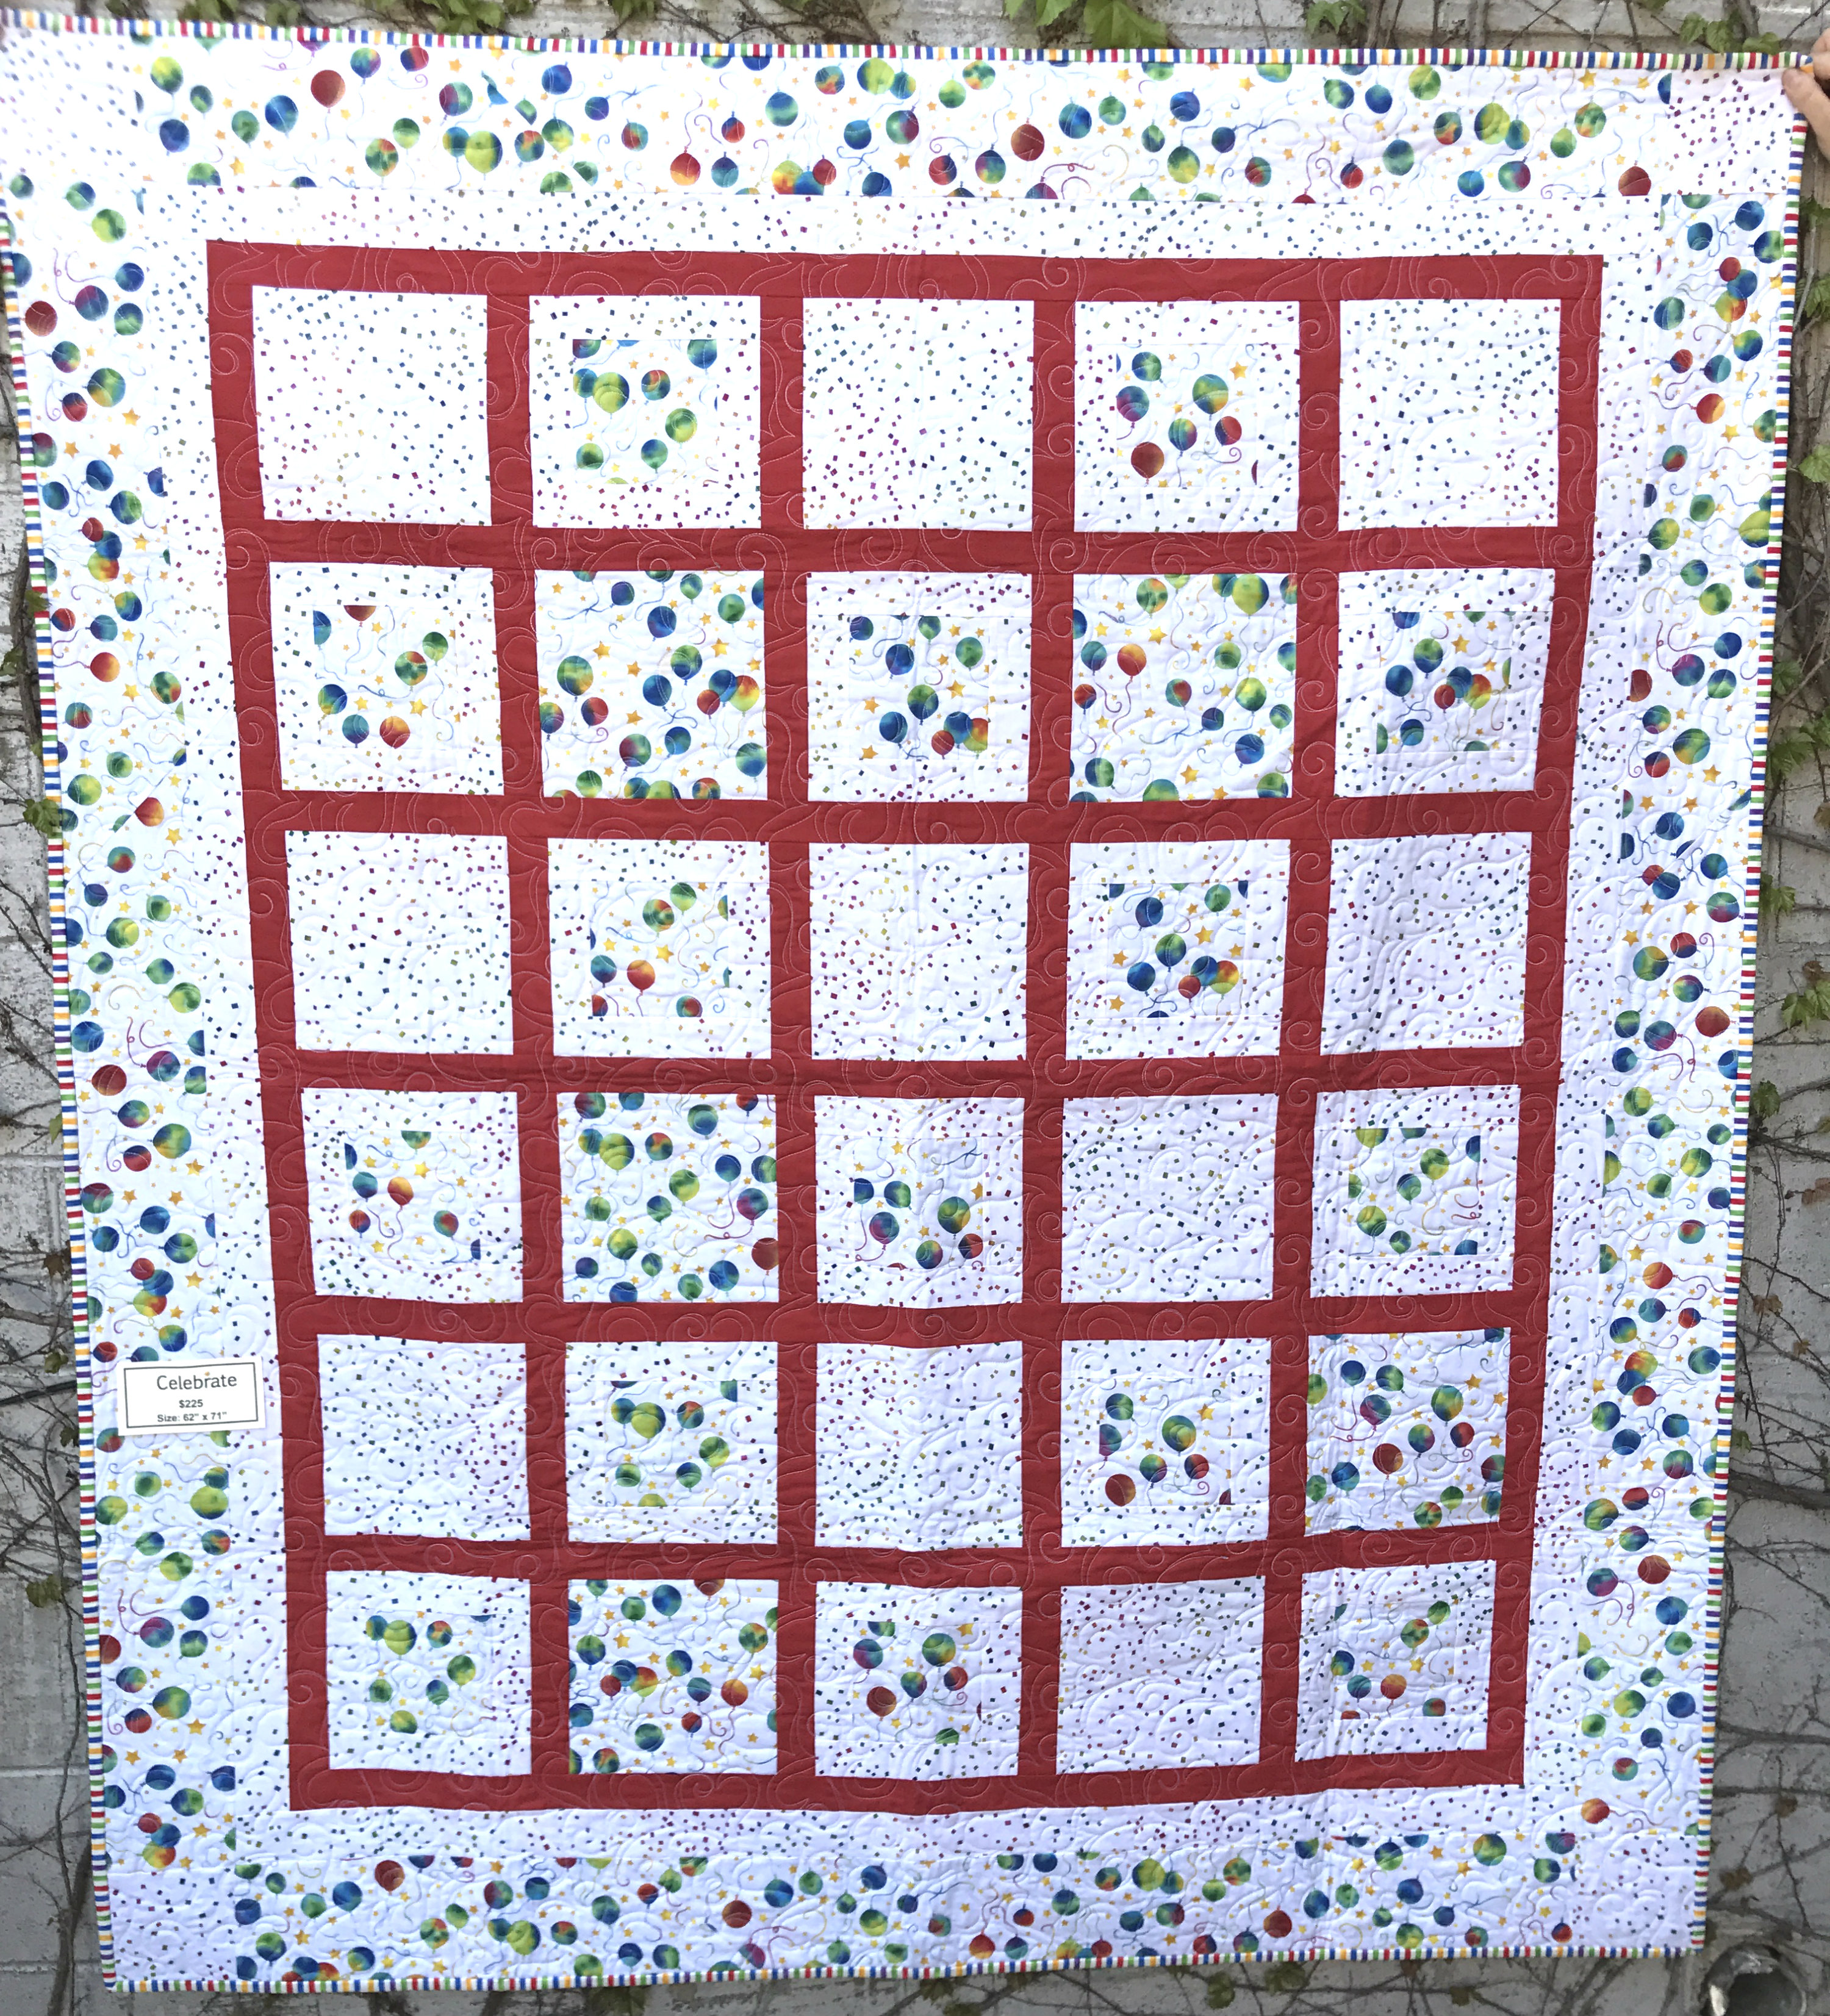 love making the brunswick for raffle quilt quilting image of fellowship and quilters